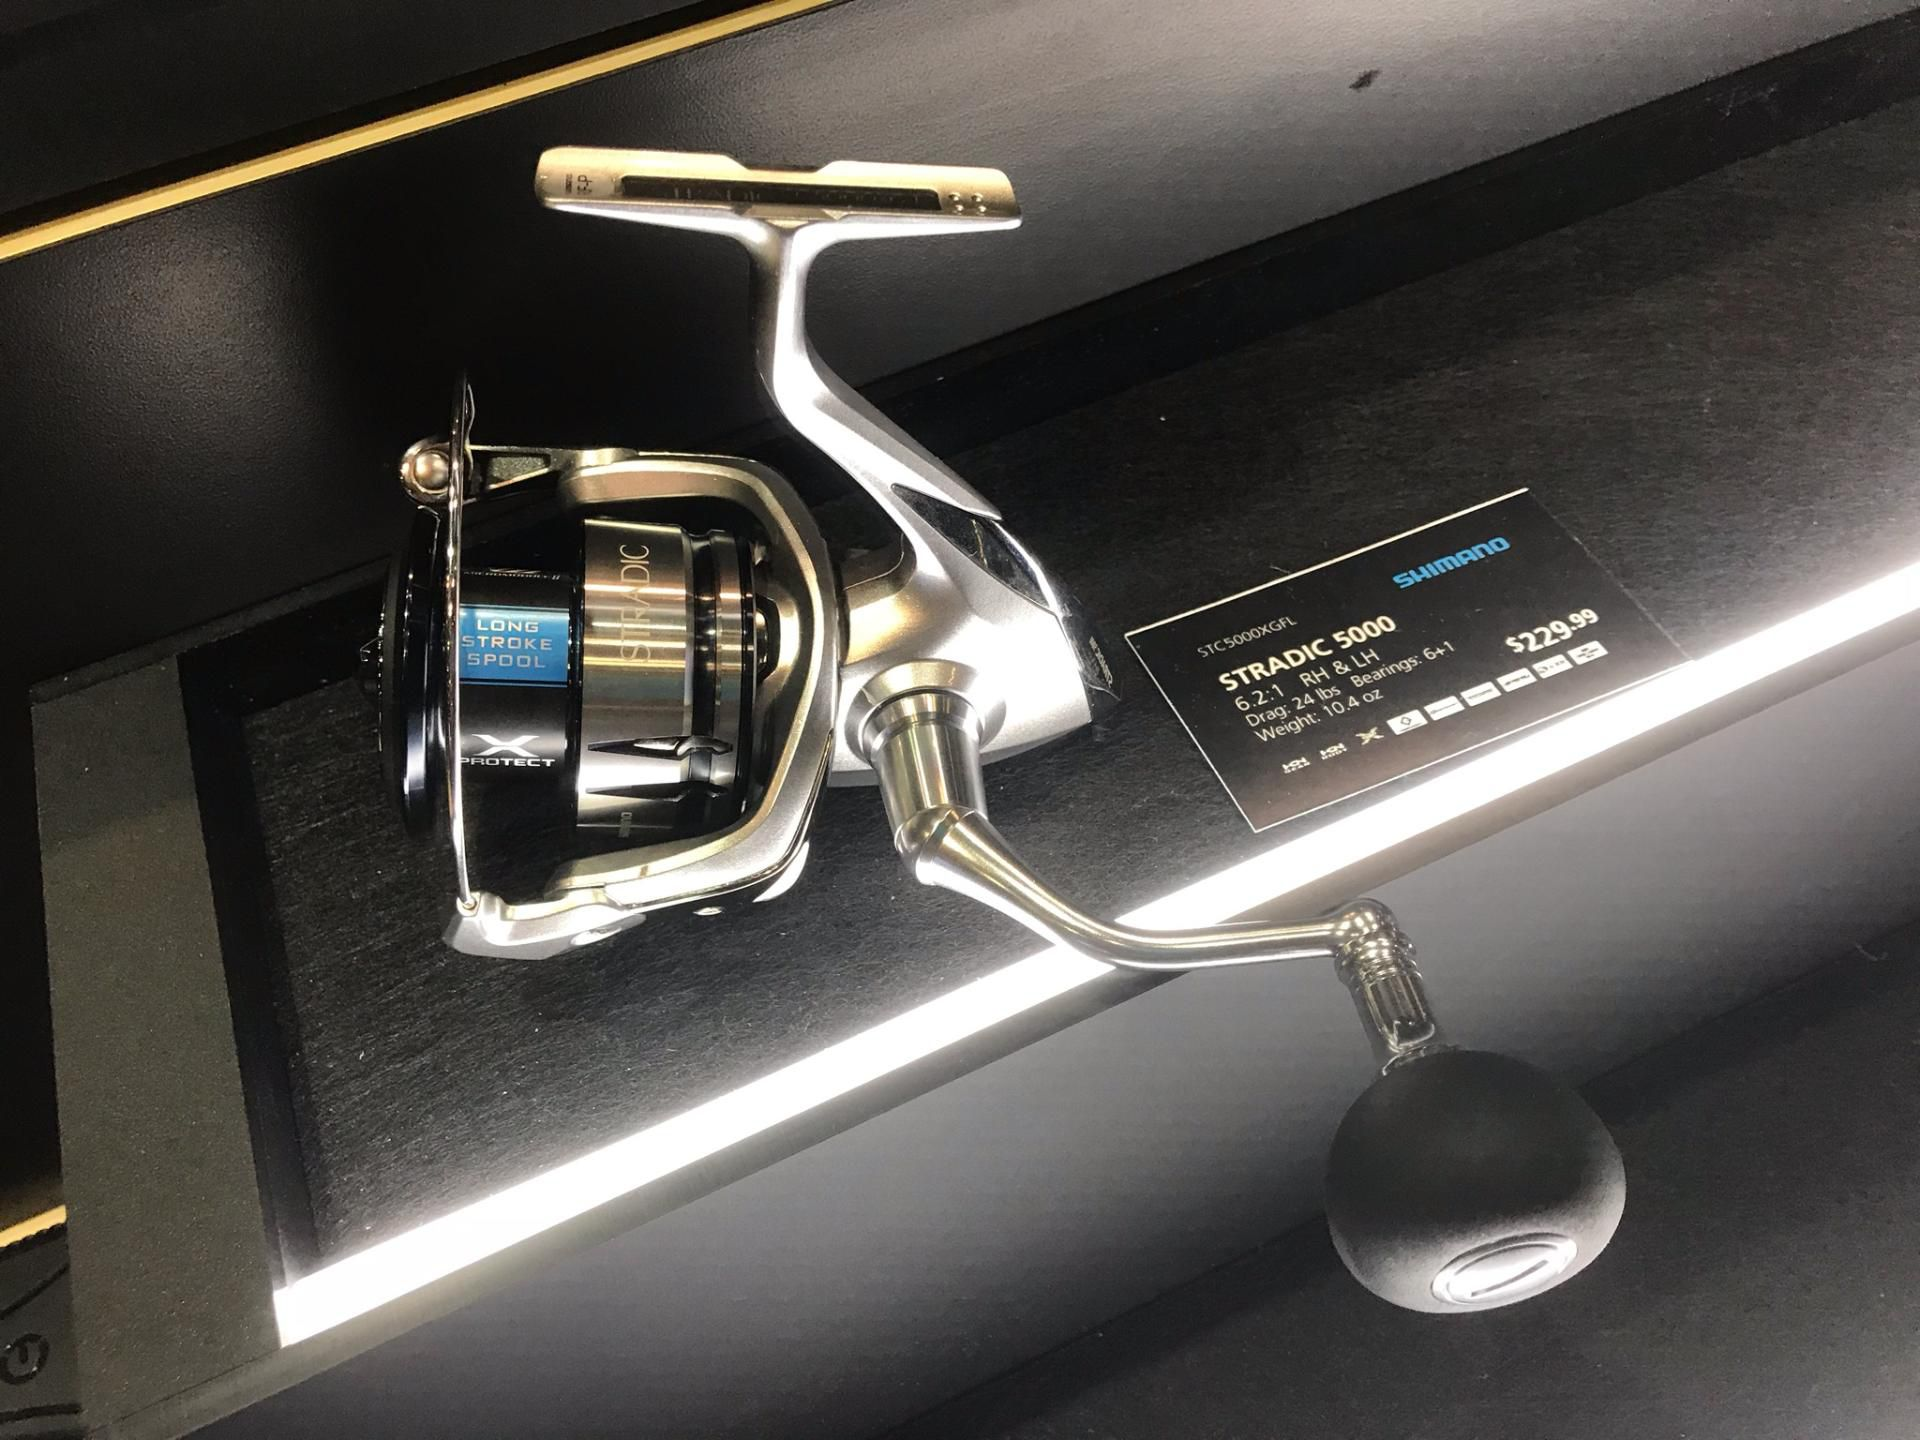 The latest version of Shimano's Stradic spinning reel incorporates many of the features included in the top of the line Stella reels, at a considerably more affordable price. Available in 5 sizes from 1000 thru 5000.